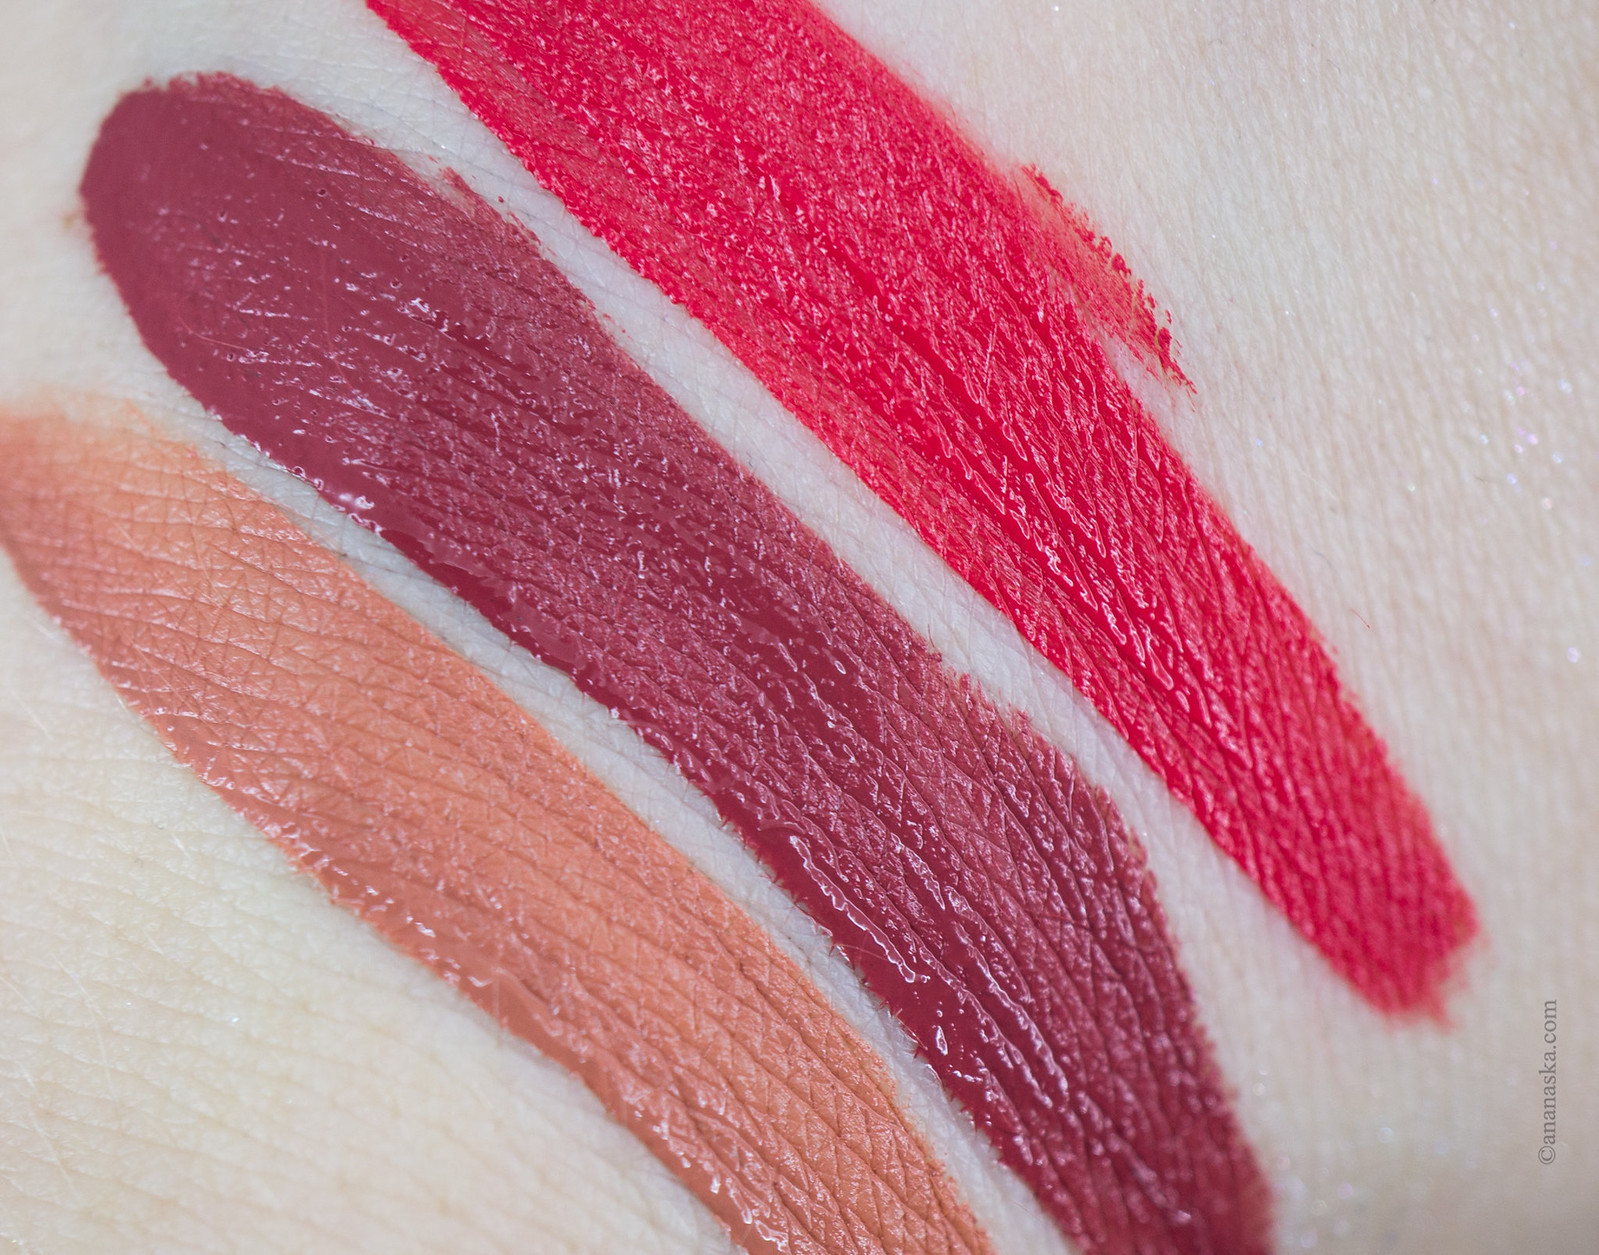 Ciate London Liquid Velvet: Nooms, Pin Up, Fast Lane